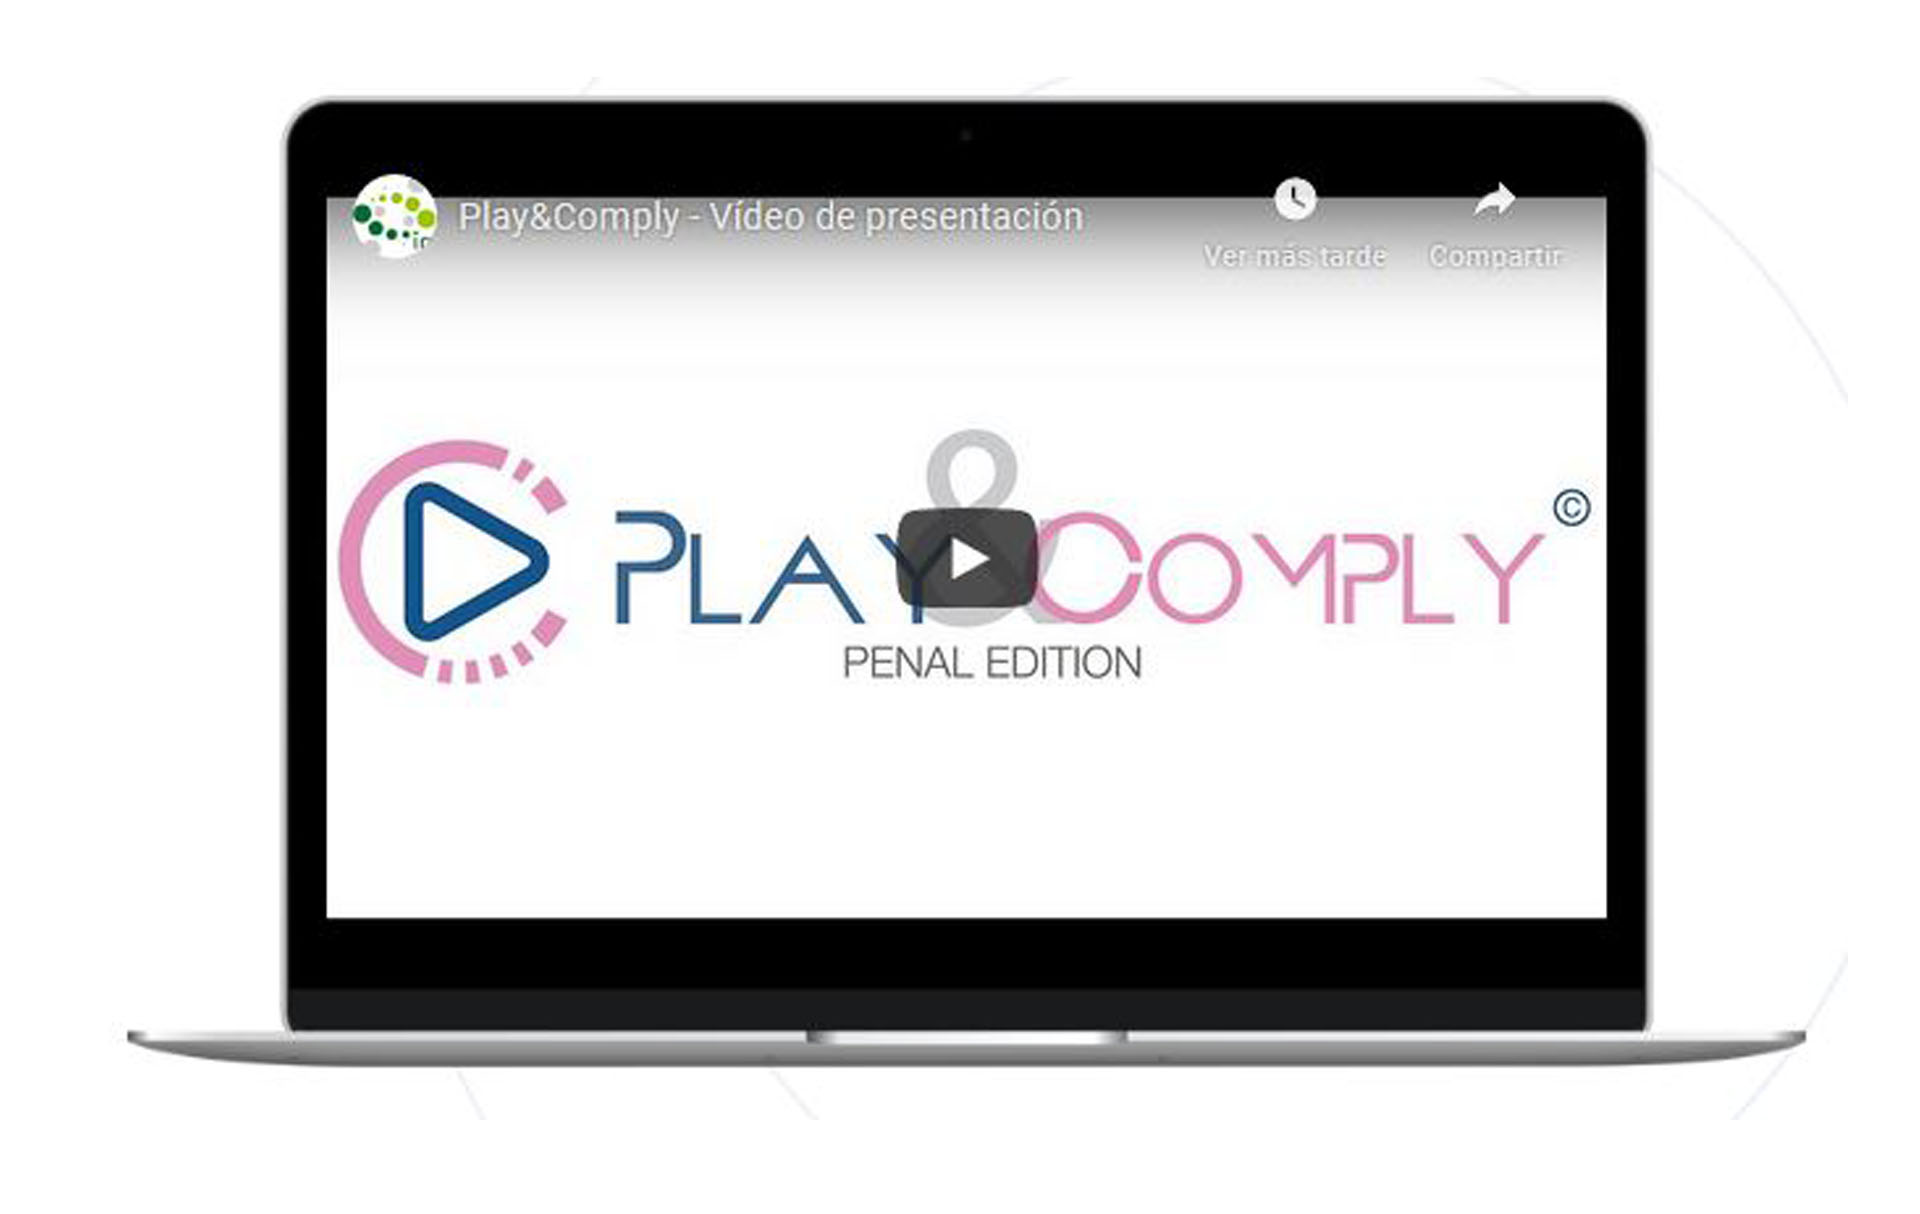 Play&Comply